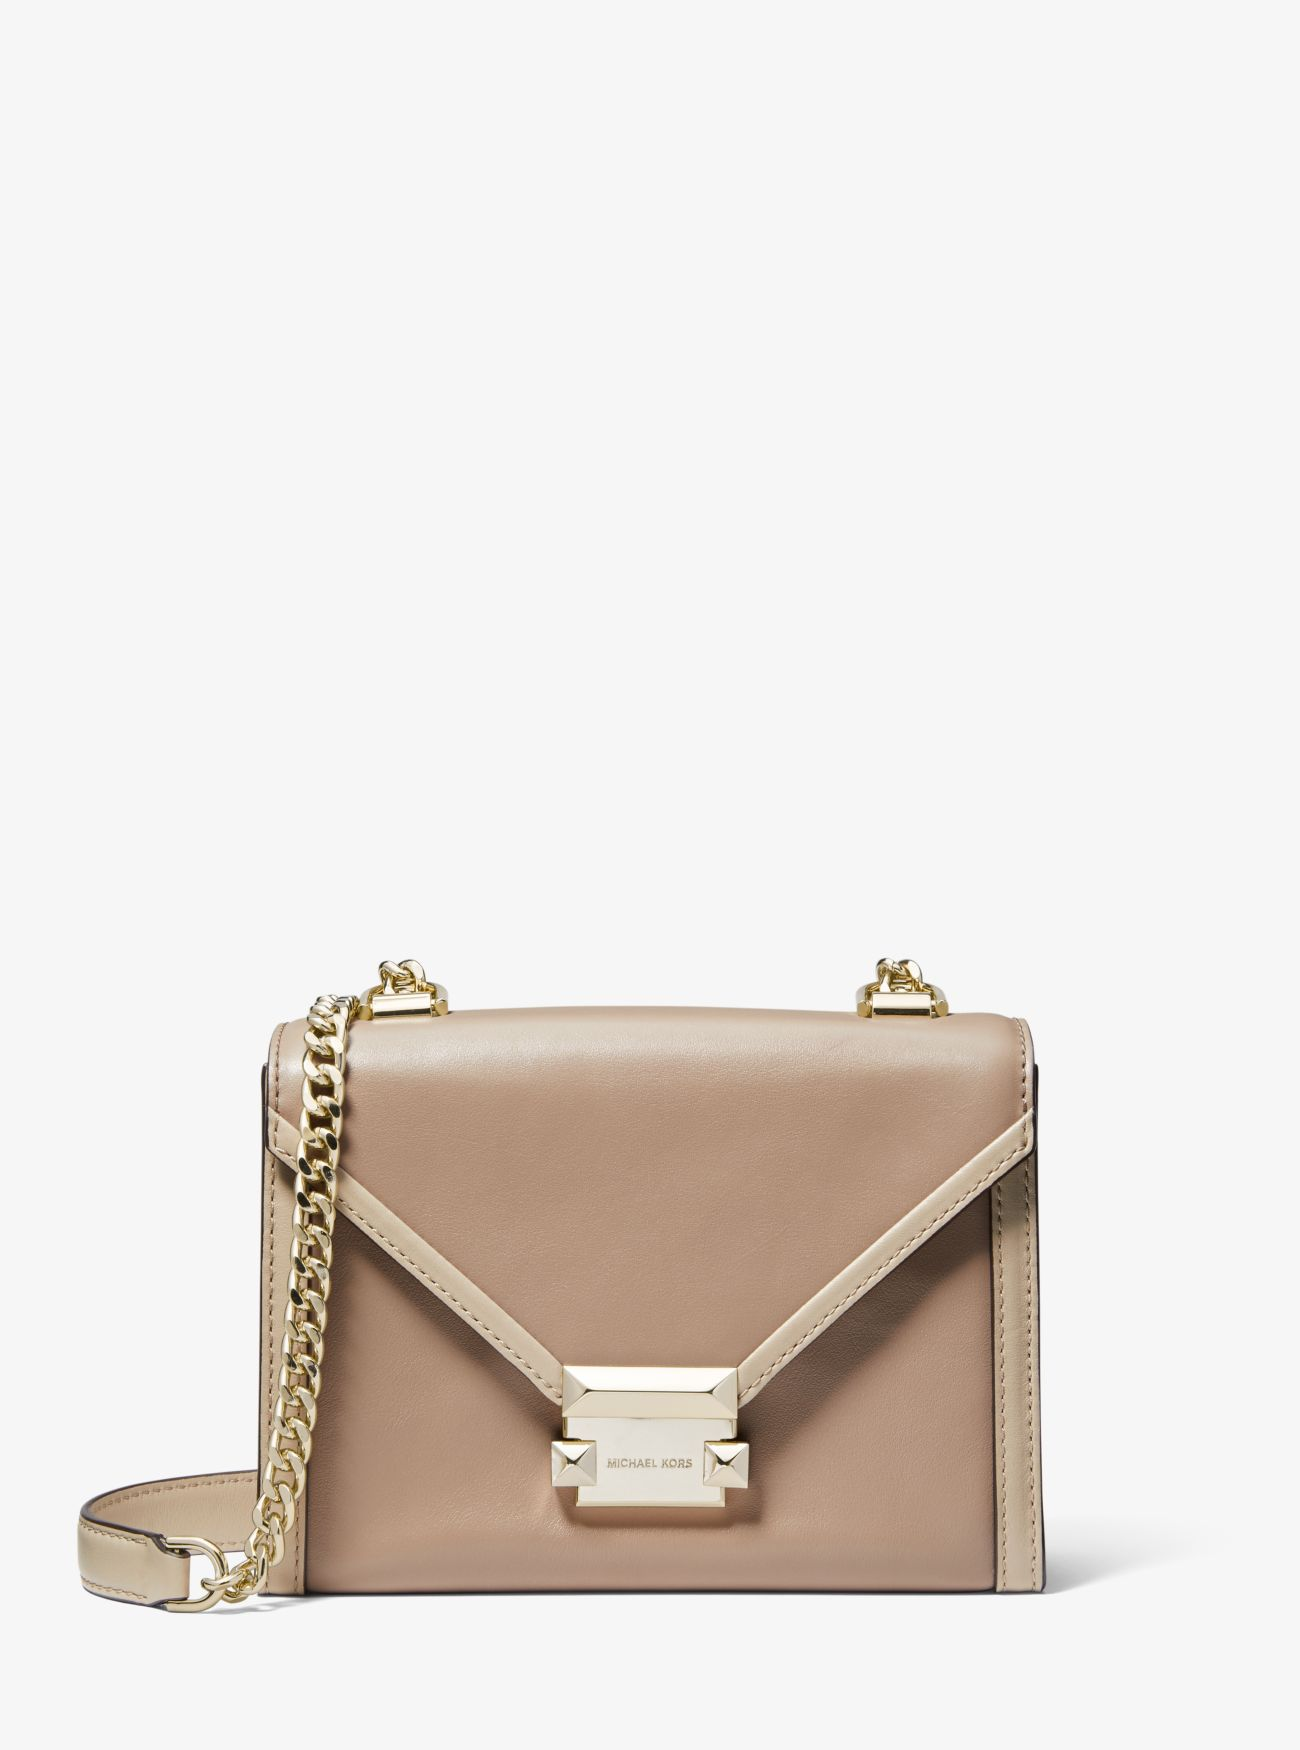 58429ef1d10a Whitney Small Two-tone Leather Convertible Shoulder Bag | Michael Kors